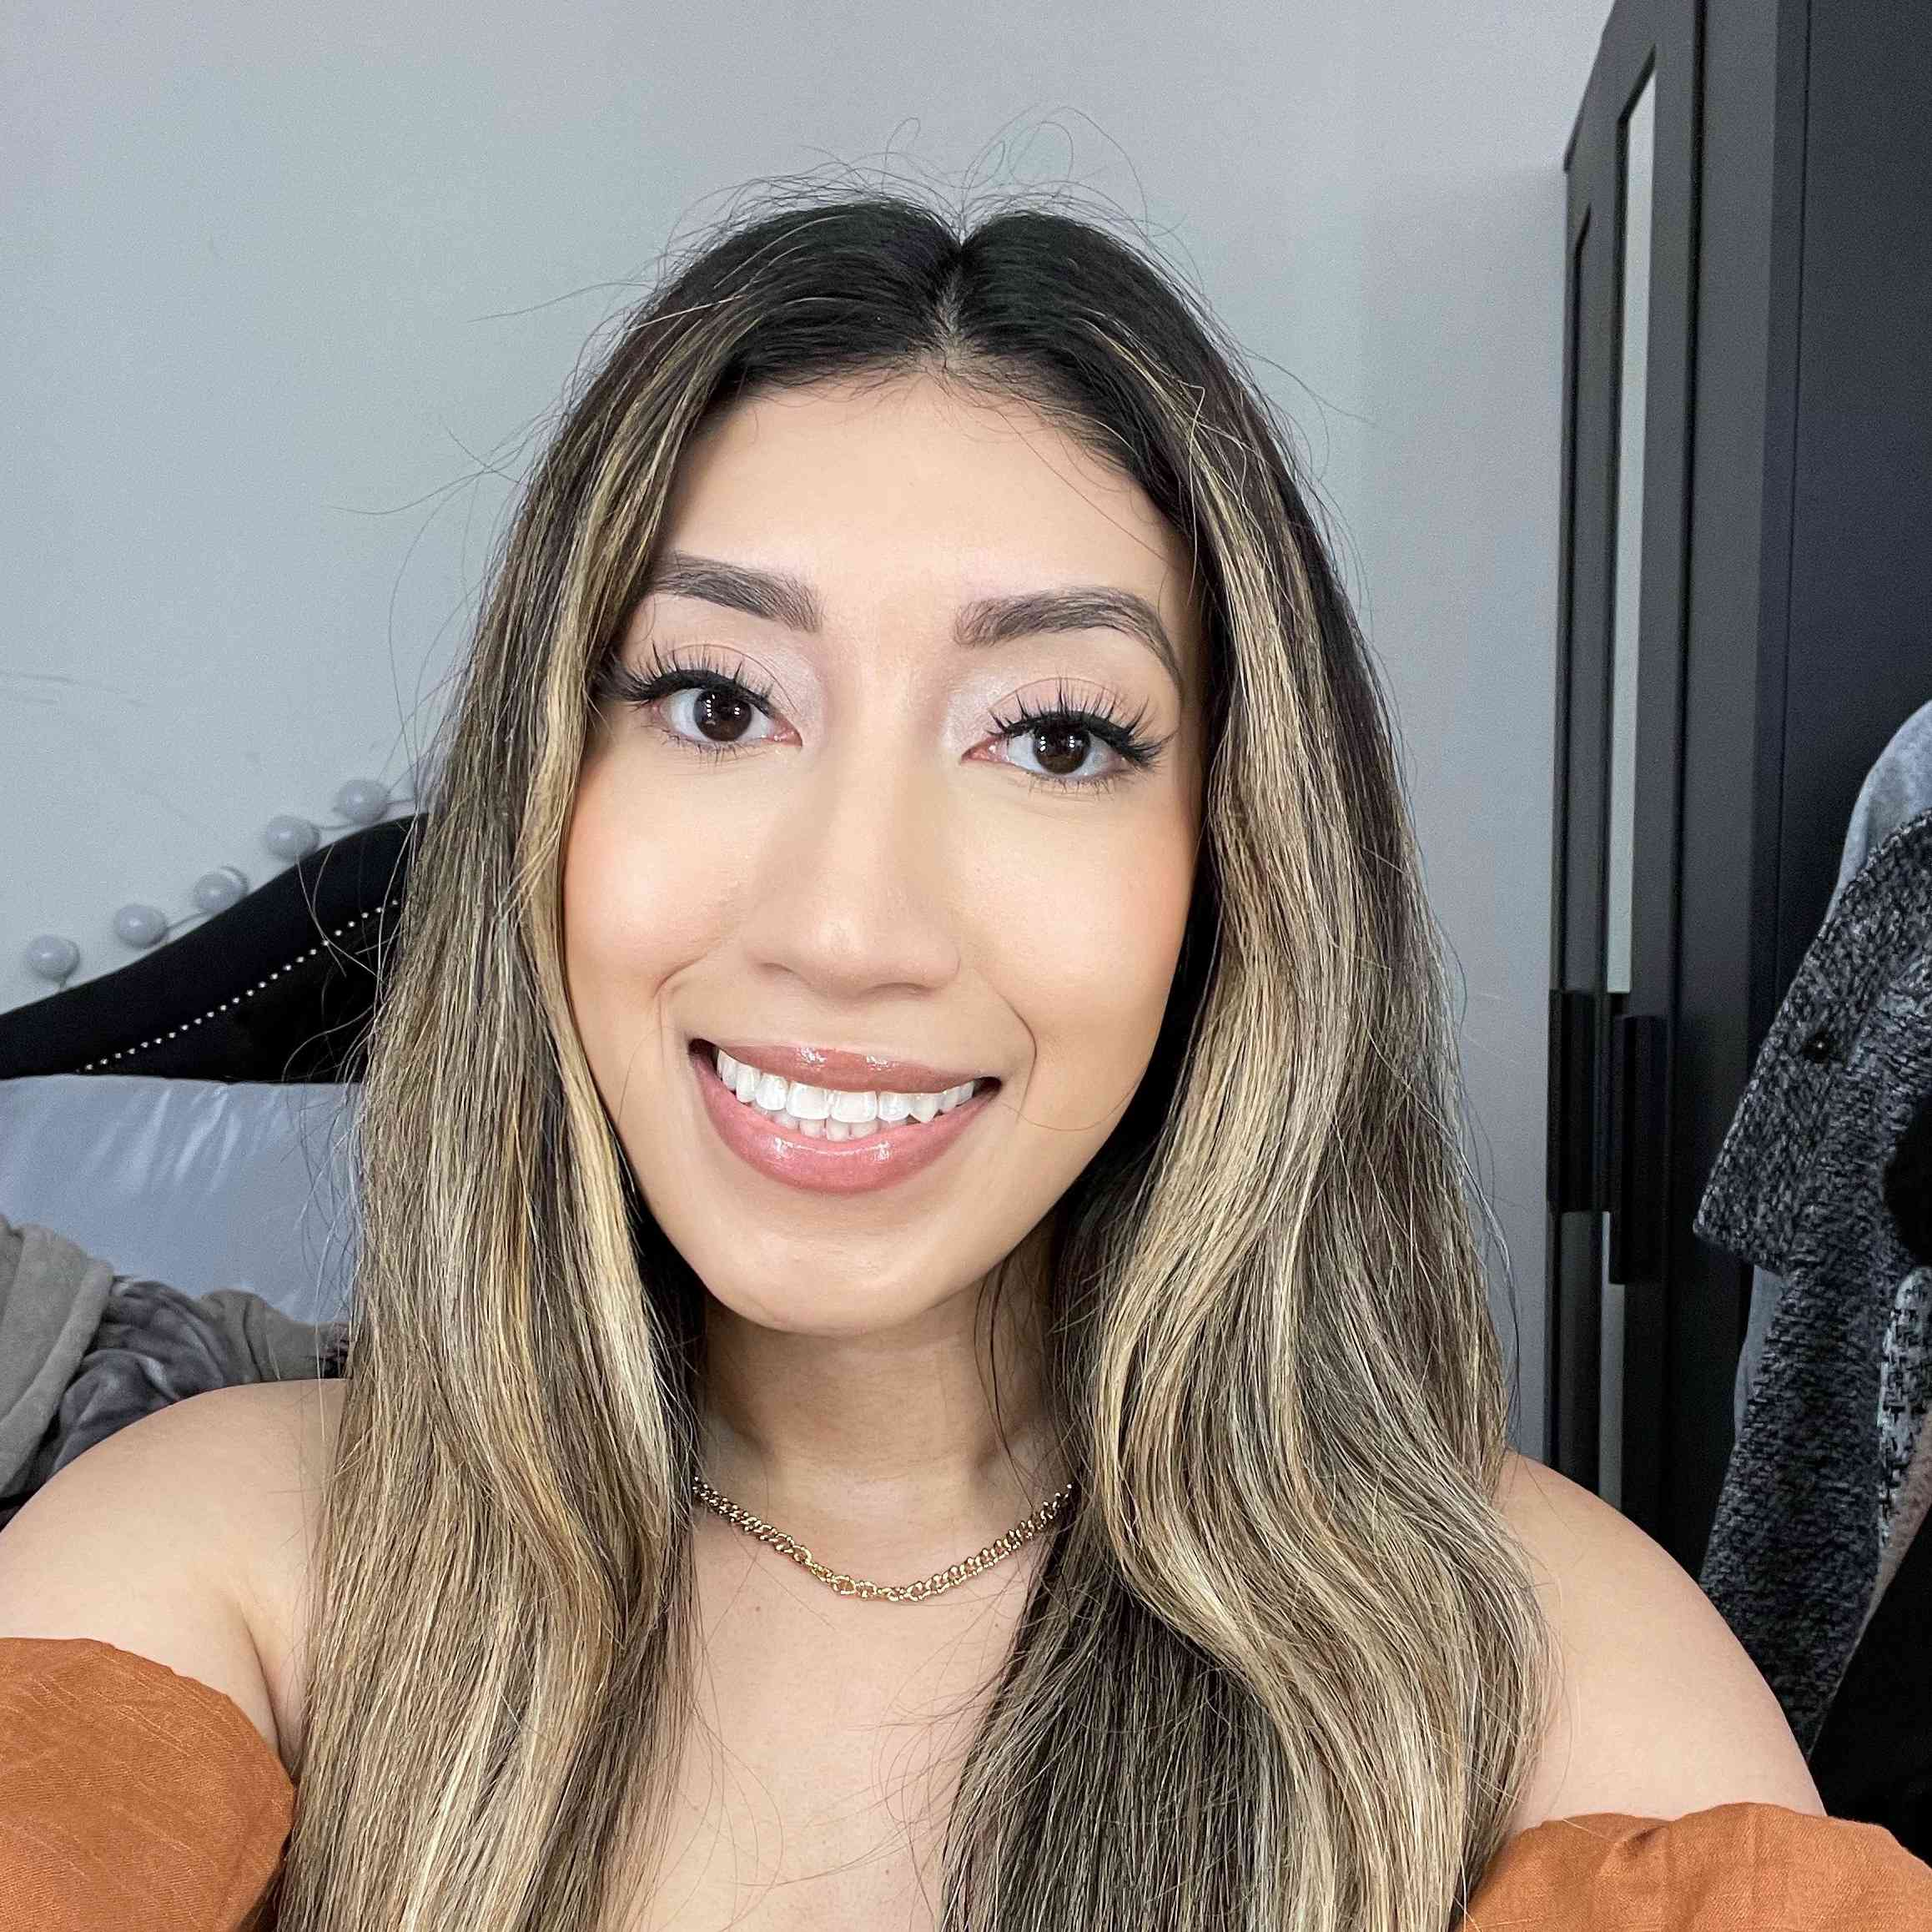 Too Faced Hangover Replenishing Face Primer Results on Karla Ayala